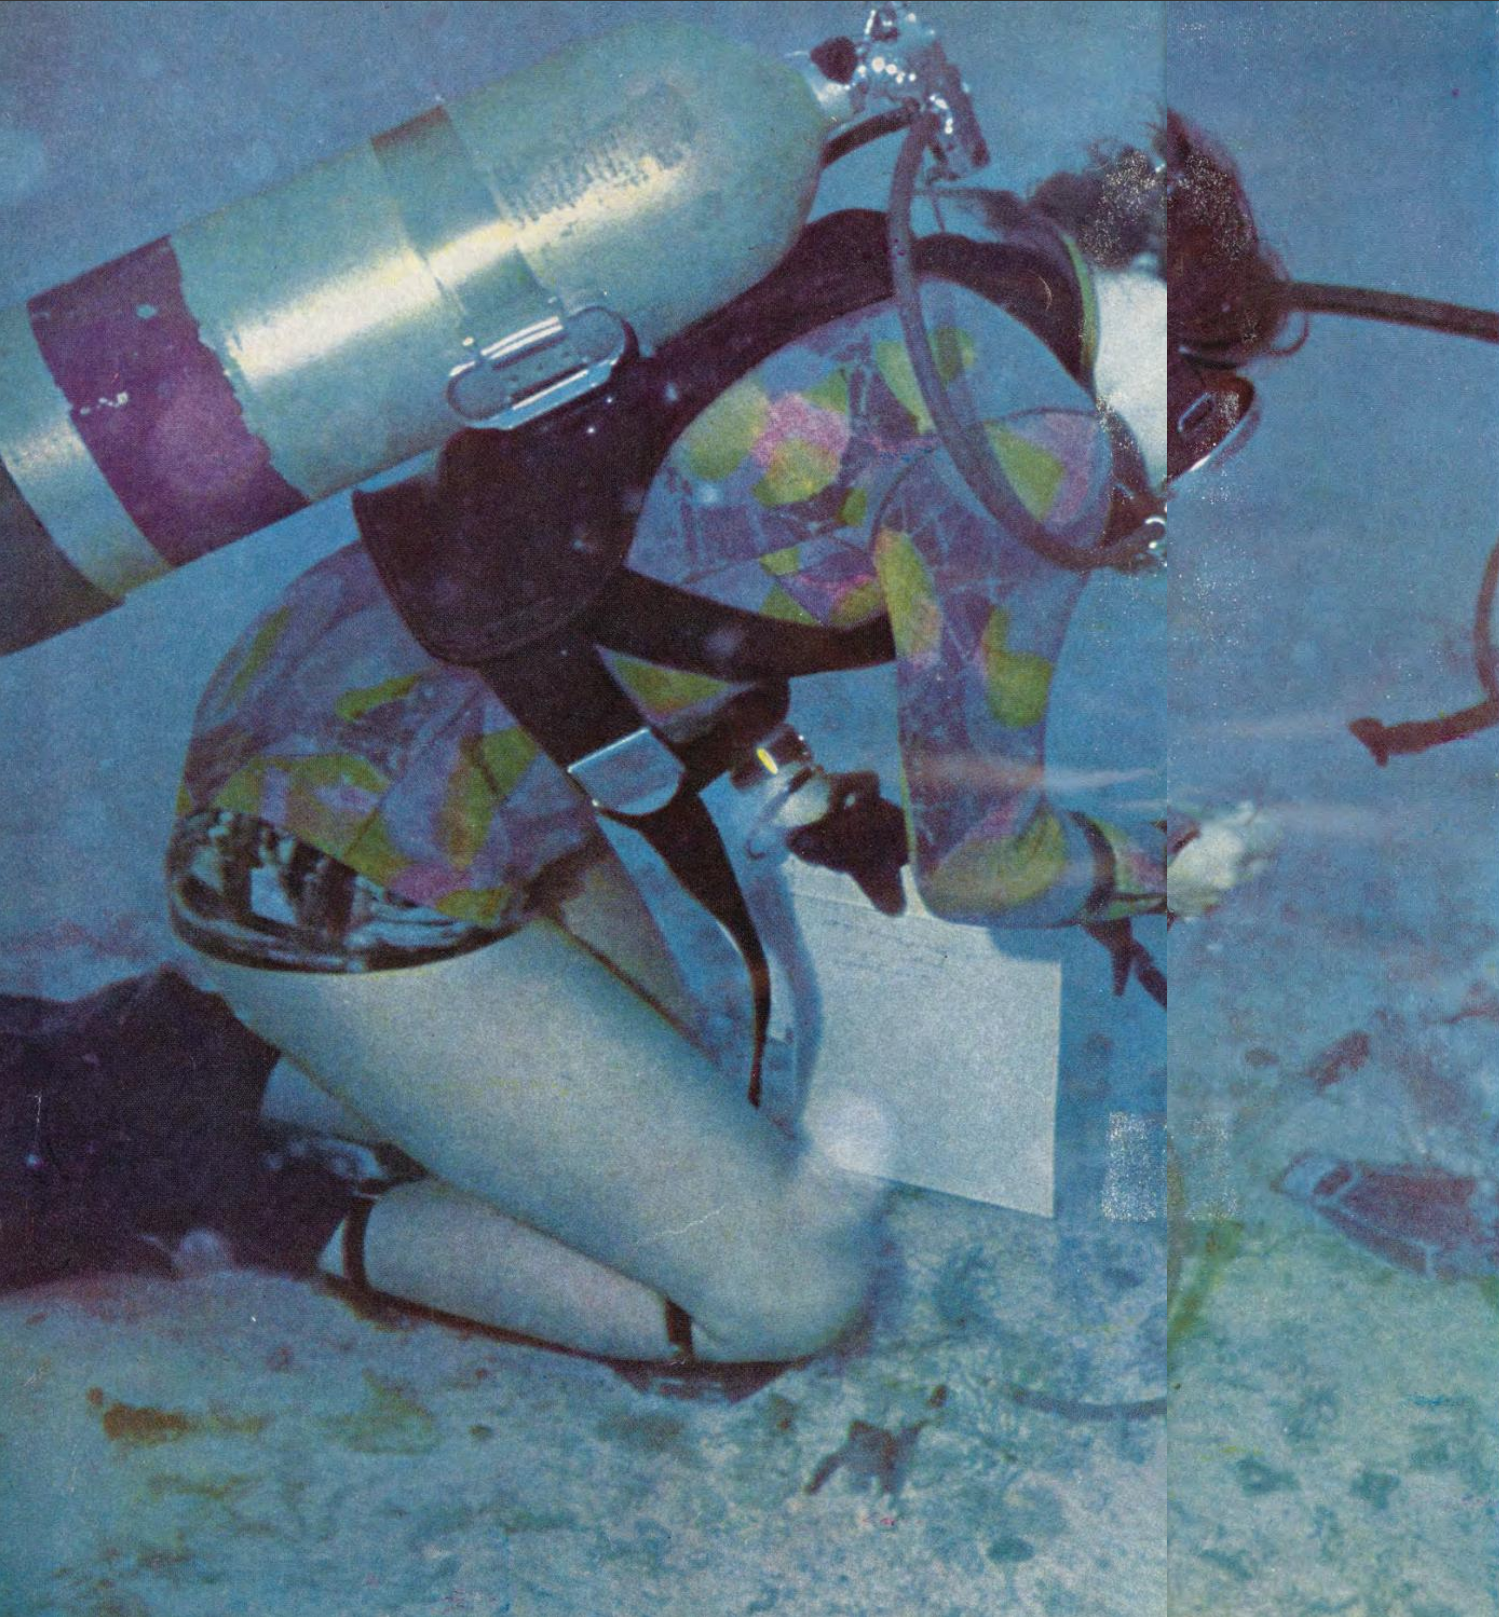 session-1-ann-hurley-sea-floor-spanmagazine-dec-1970.png